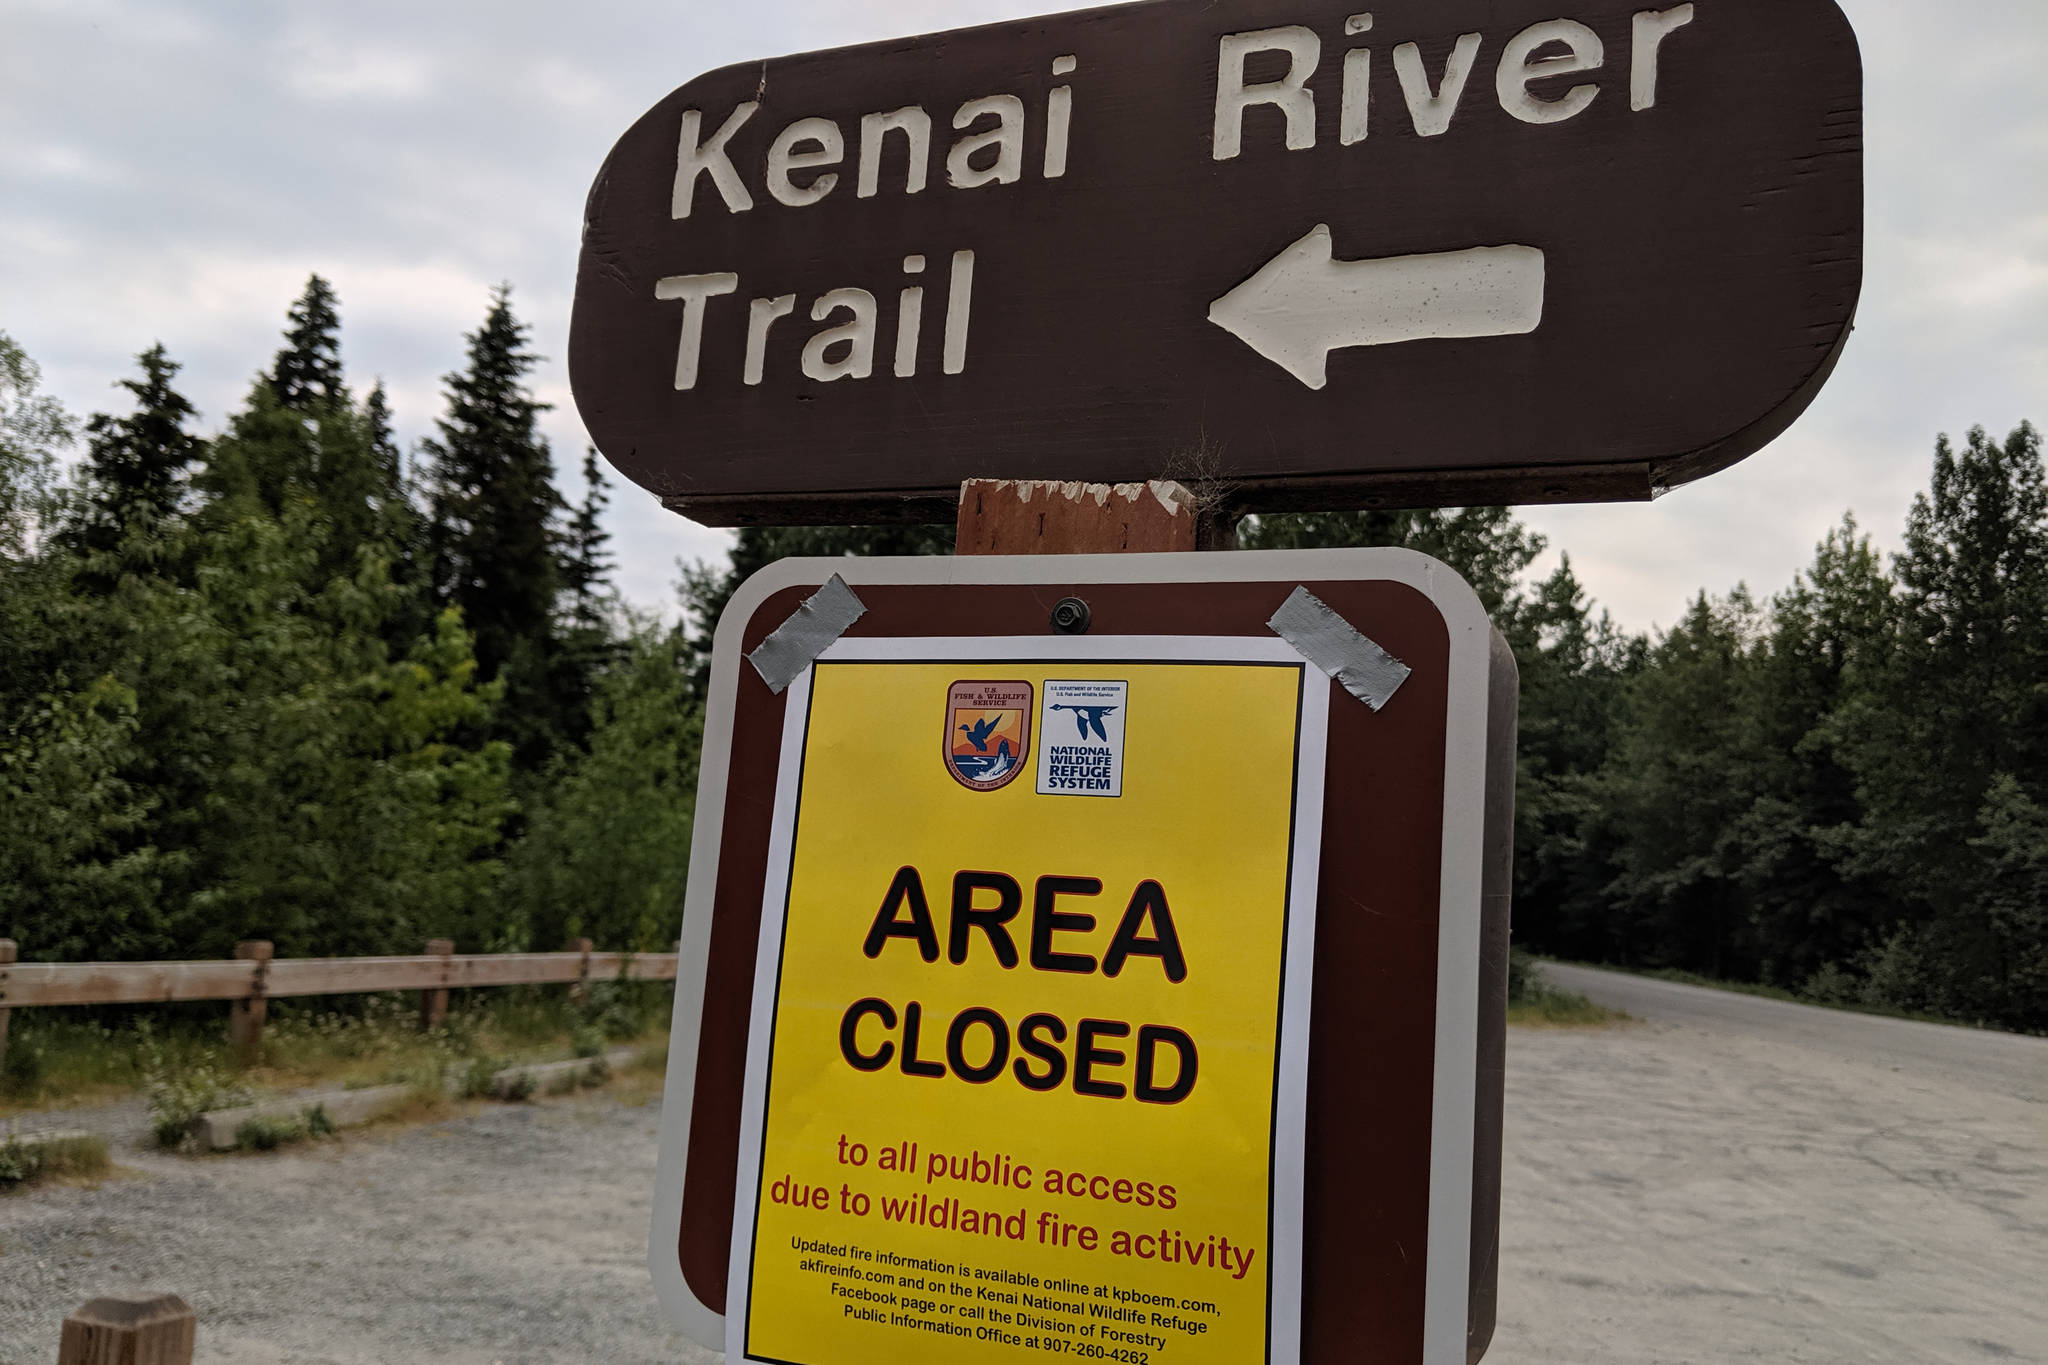 A sign for trail closures can be seen on Skilak Lake Road on Sunday, June 23, 2019. The Kenai Wildlife Refuge closed recreation areas, including Bottenintnin Lake, Watson Lake Campground, Egumen Lake Trail, Petersen Lake Campground, Kelly Campground, Seven Lakes Trail, Skyline Trail and Jean Lake Campground over the weekend. (Photo by Erin Thompson/Peninsula Clarion)